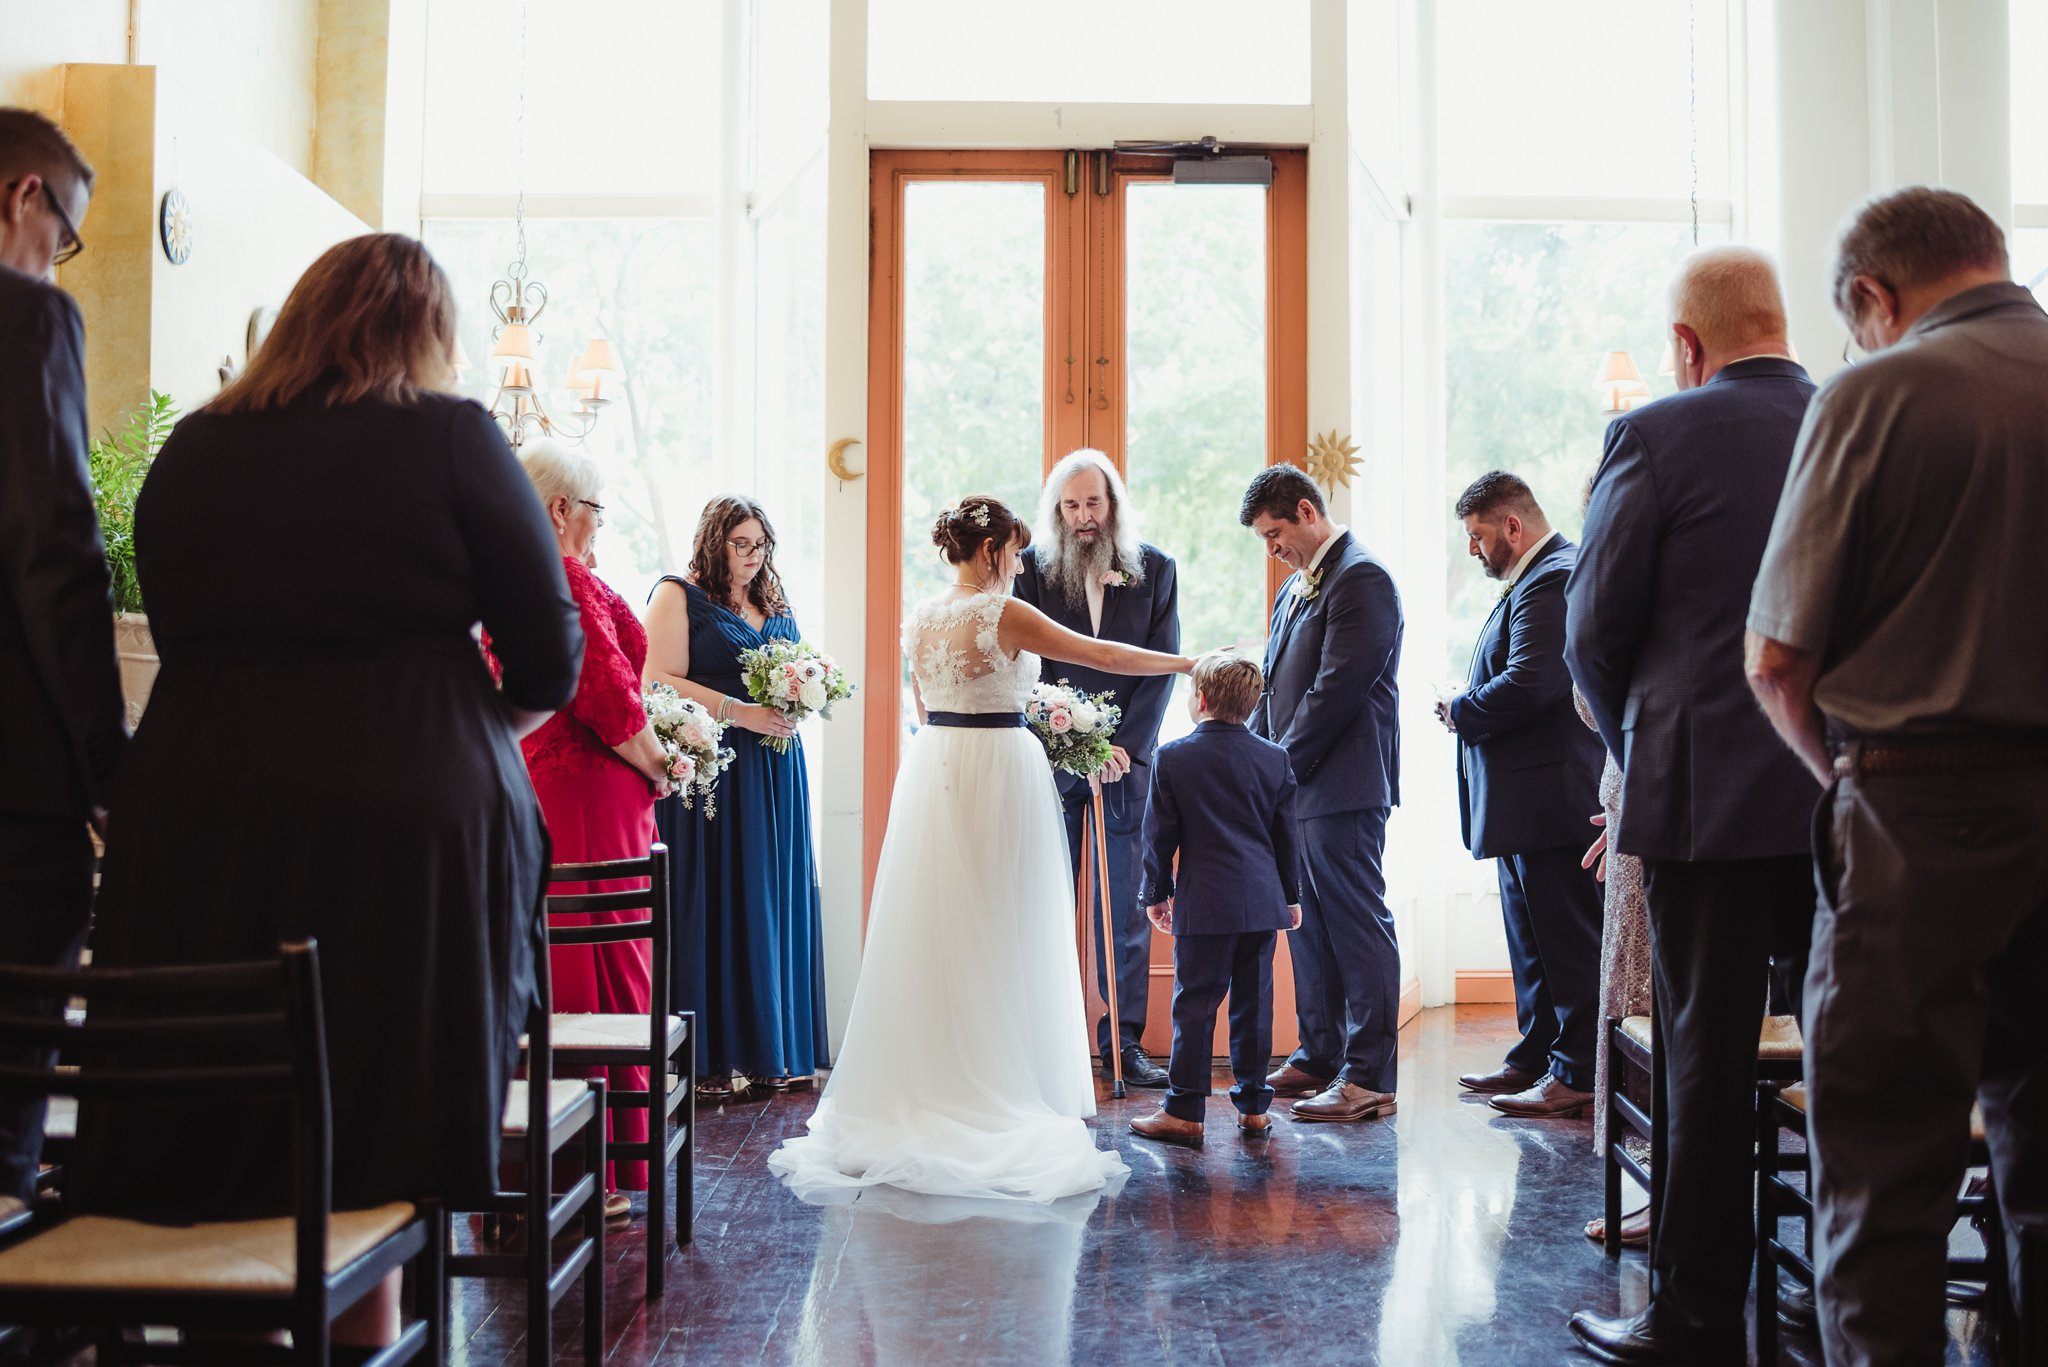 The bride was escorted down the aisle by her son during their wedding ceremony, pictures taken by Rose Trail Images at Caffe Luna in Raleigh, NC.